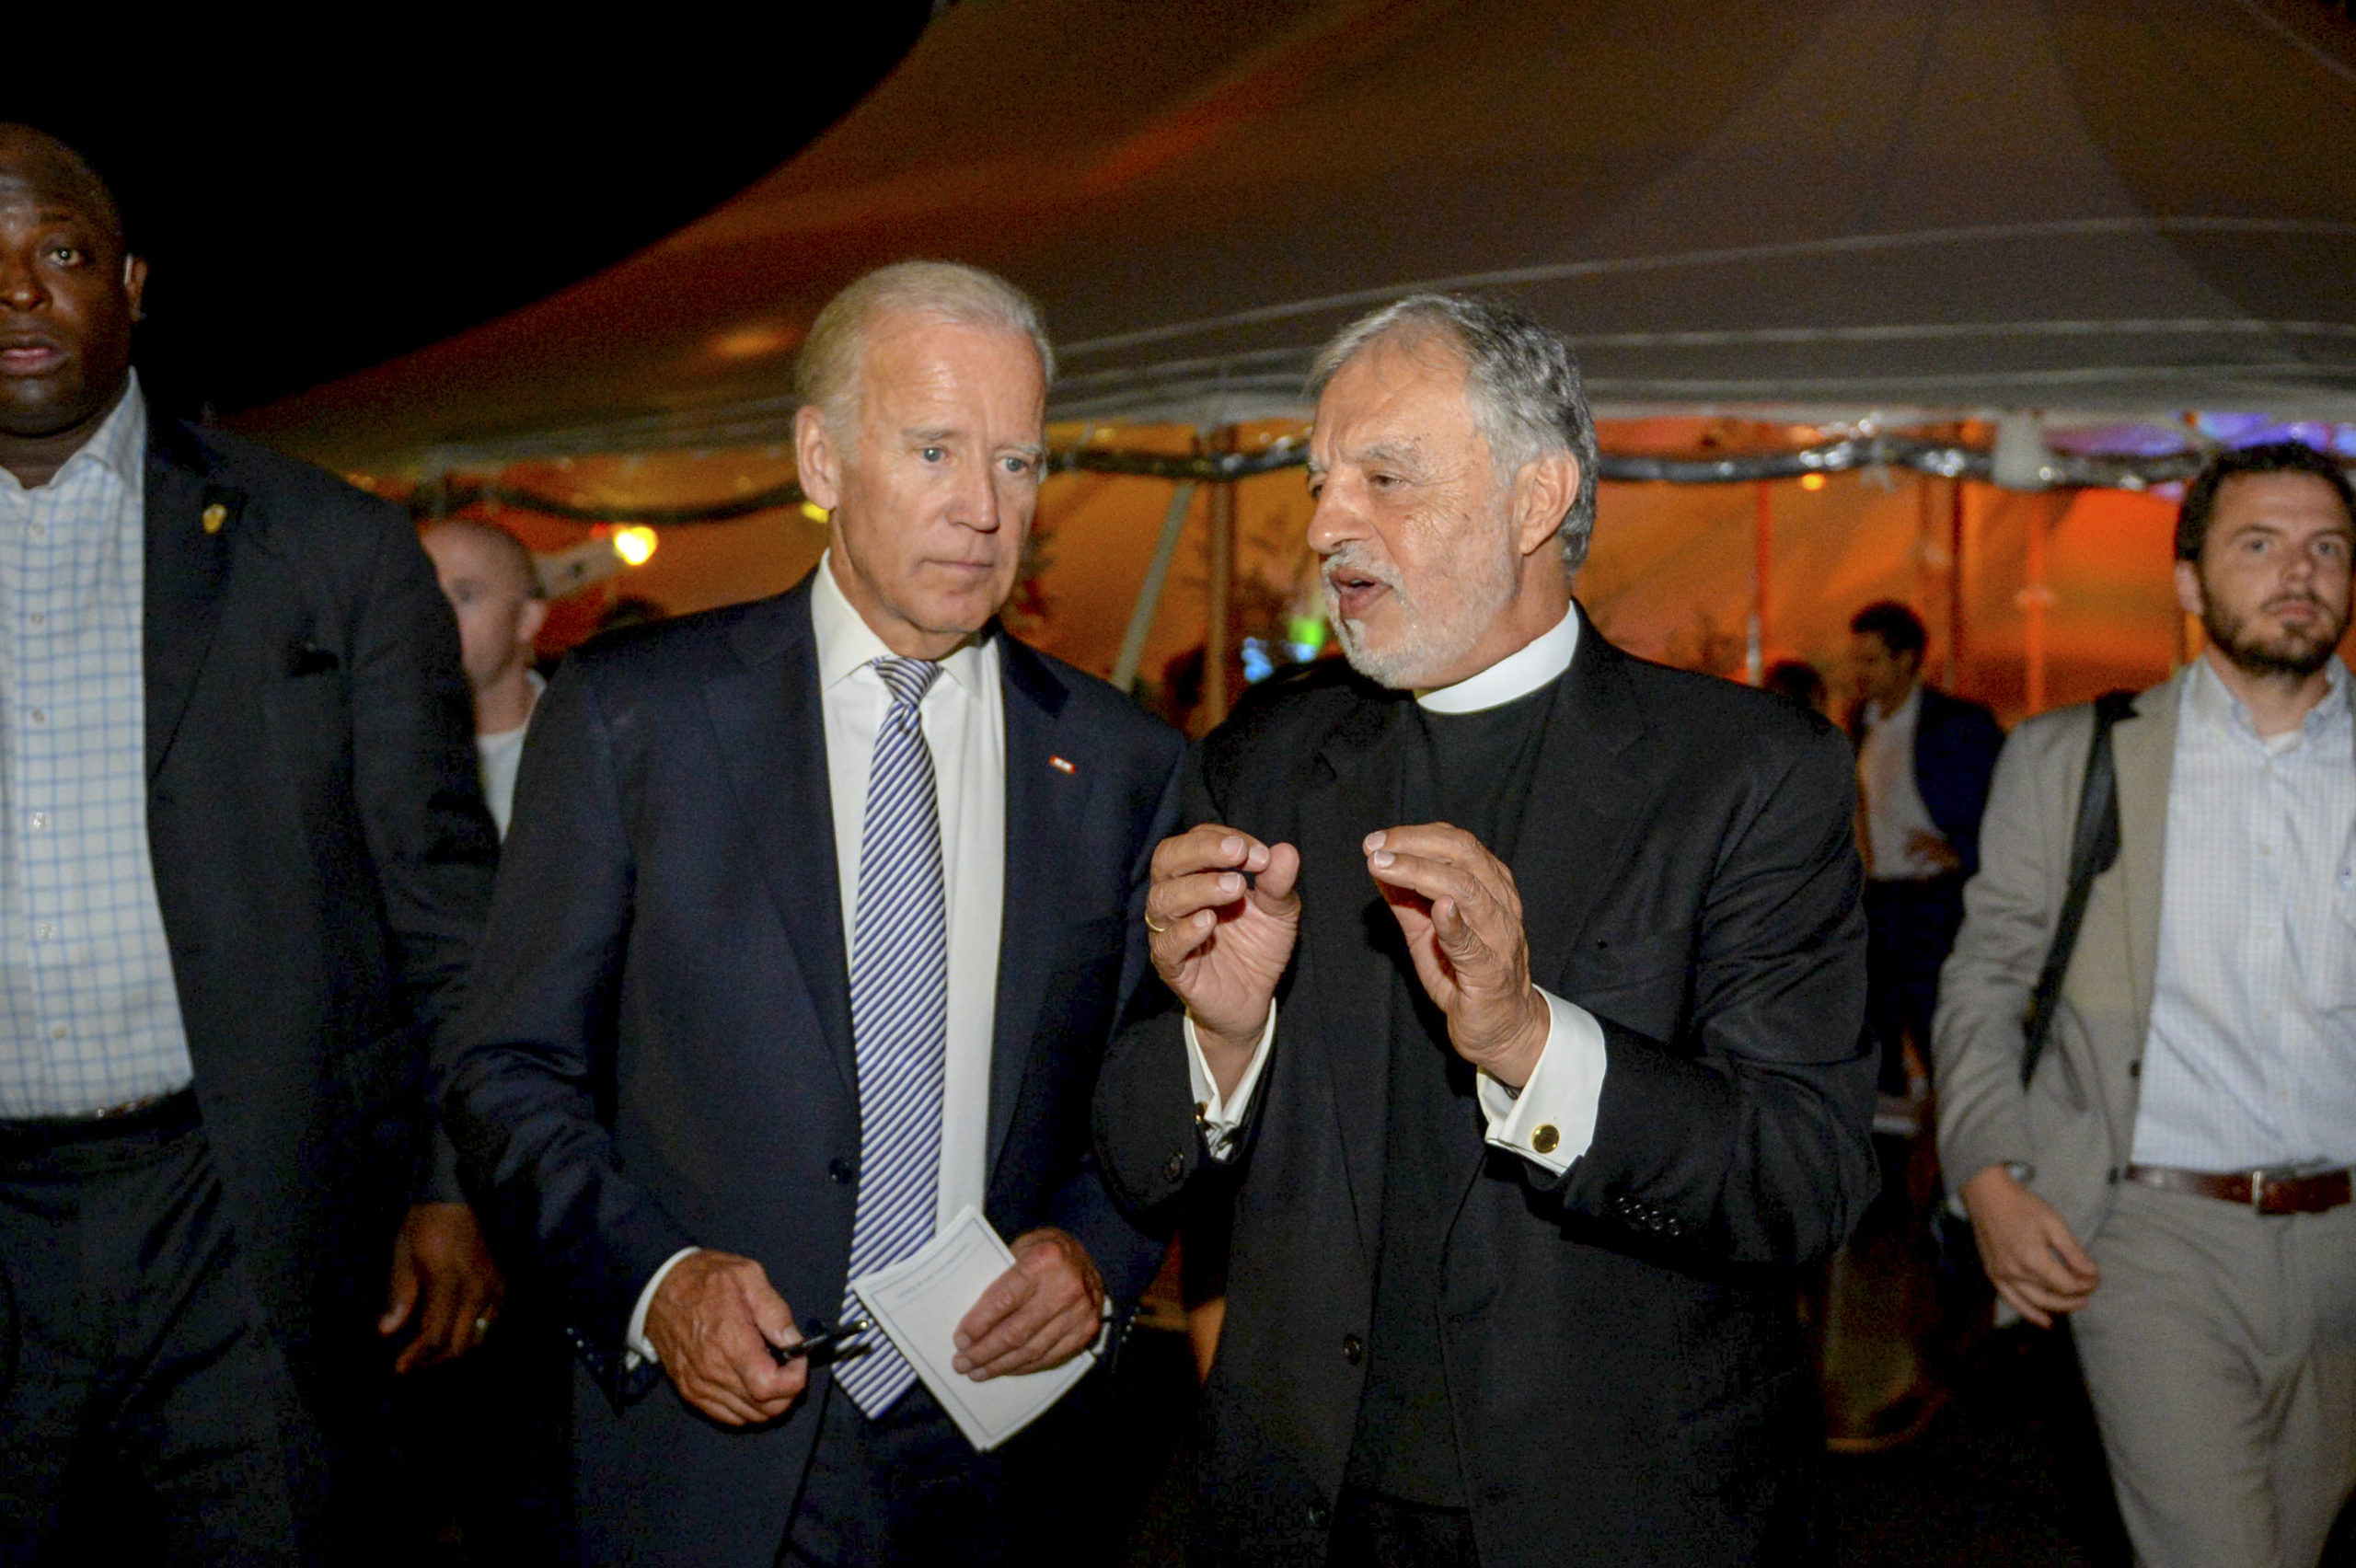 President-elect Joe Biden with Father Alex Karloutsos at the 2016 Blue Dream Gala at the the Dormition of the Virgin Mary Greek Orthodox Church of the Hamptons. JOHN MINDALA